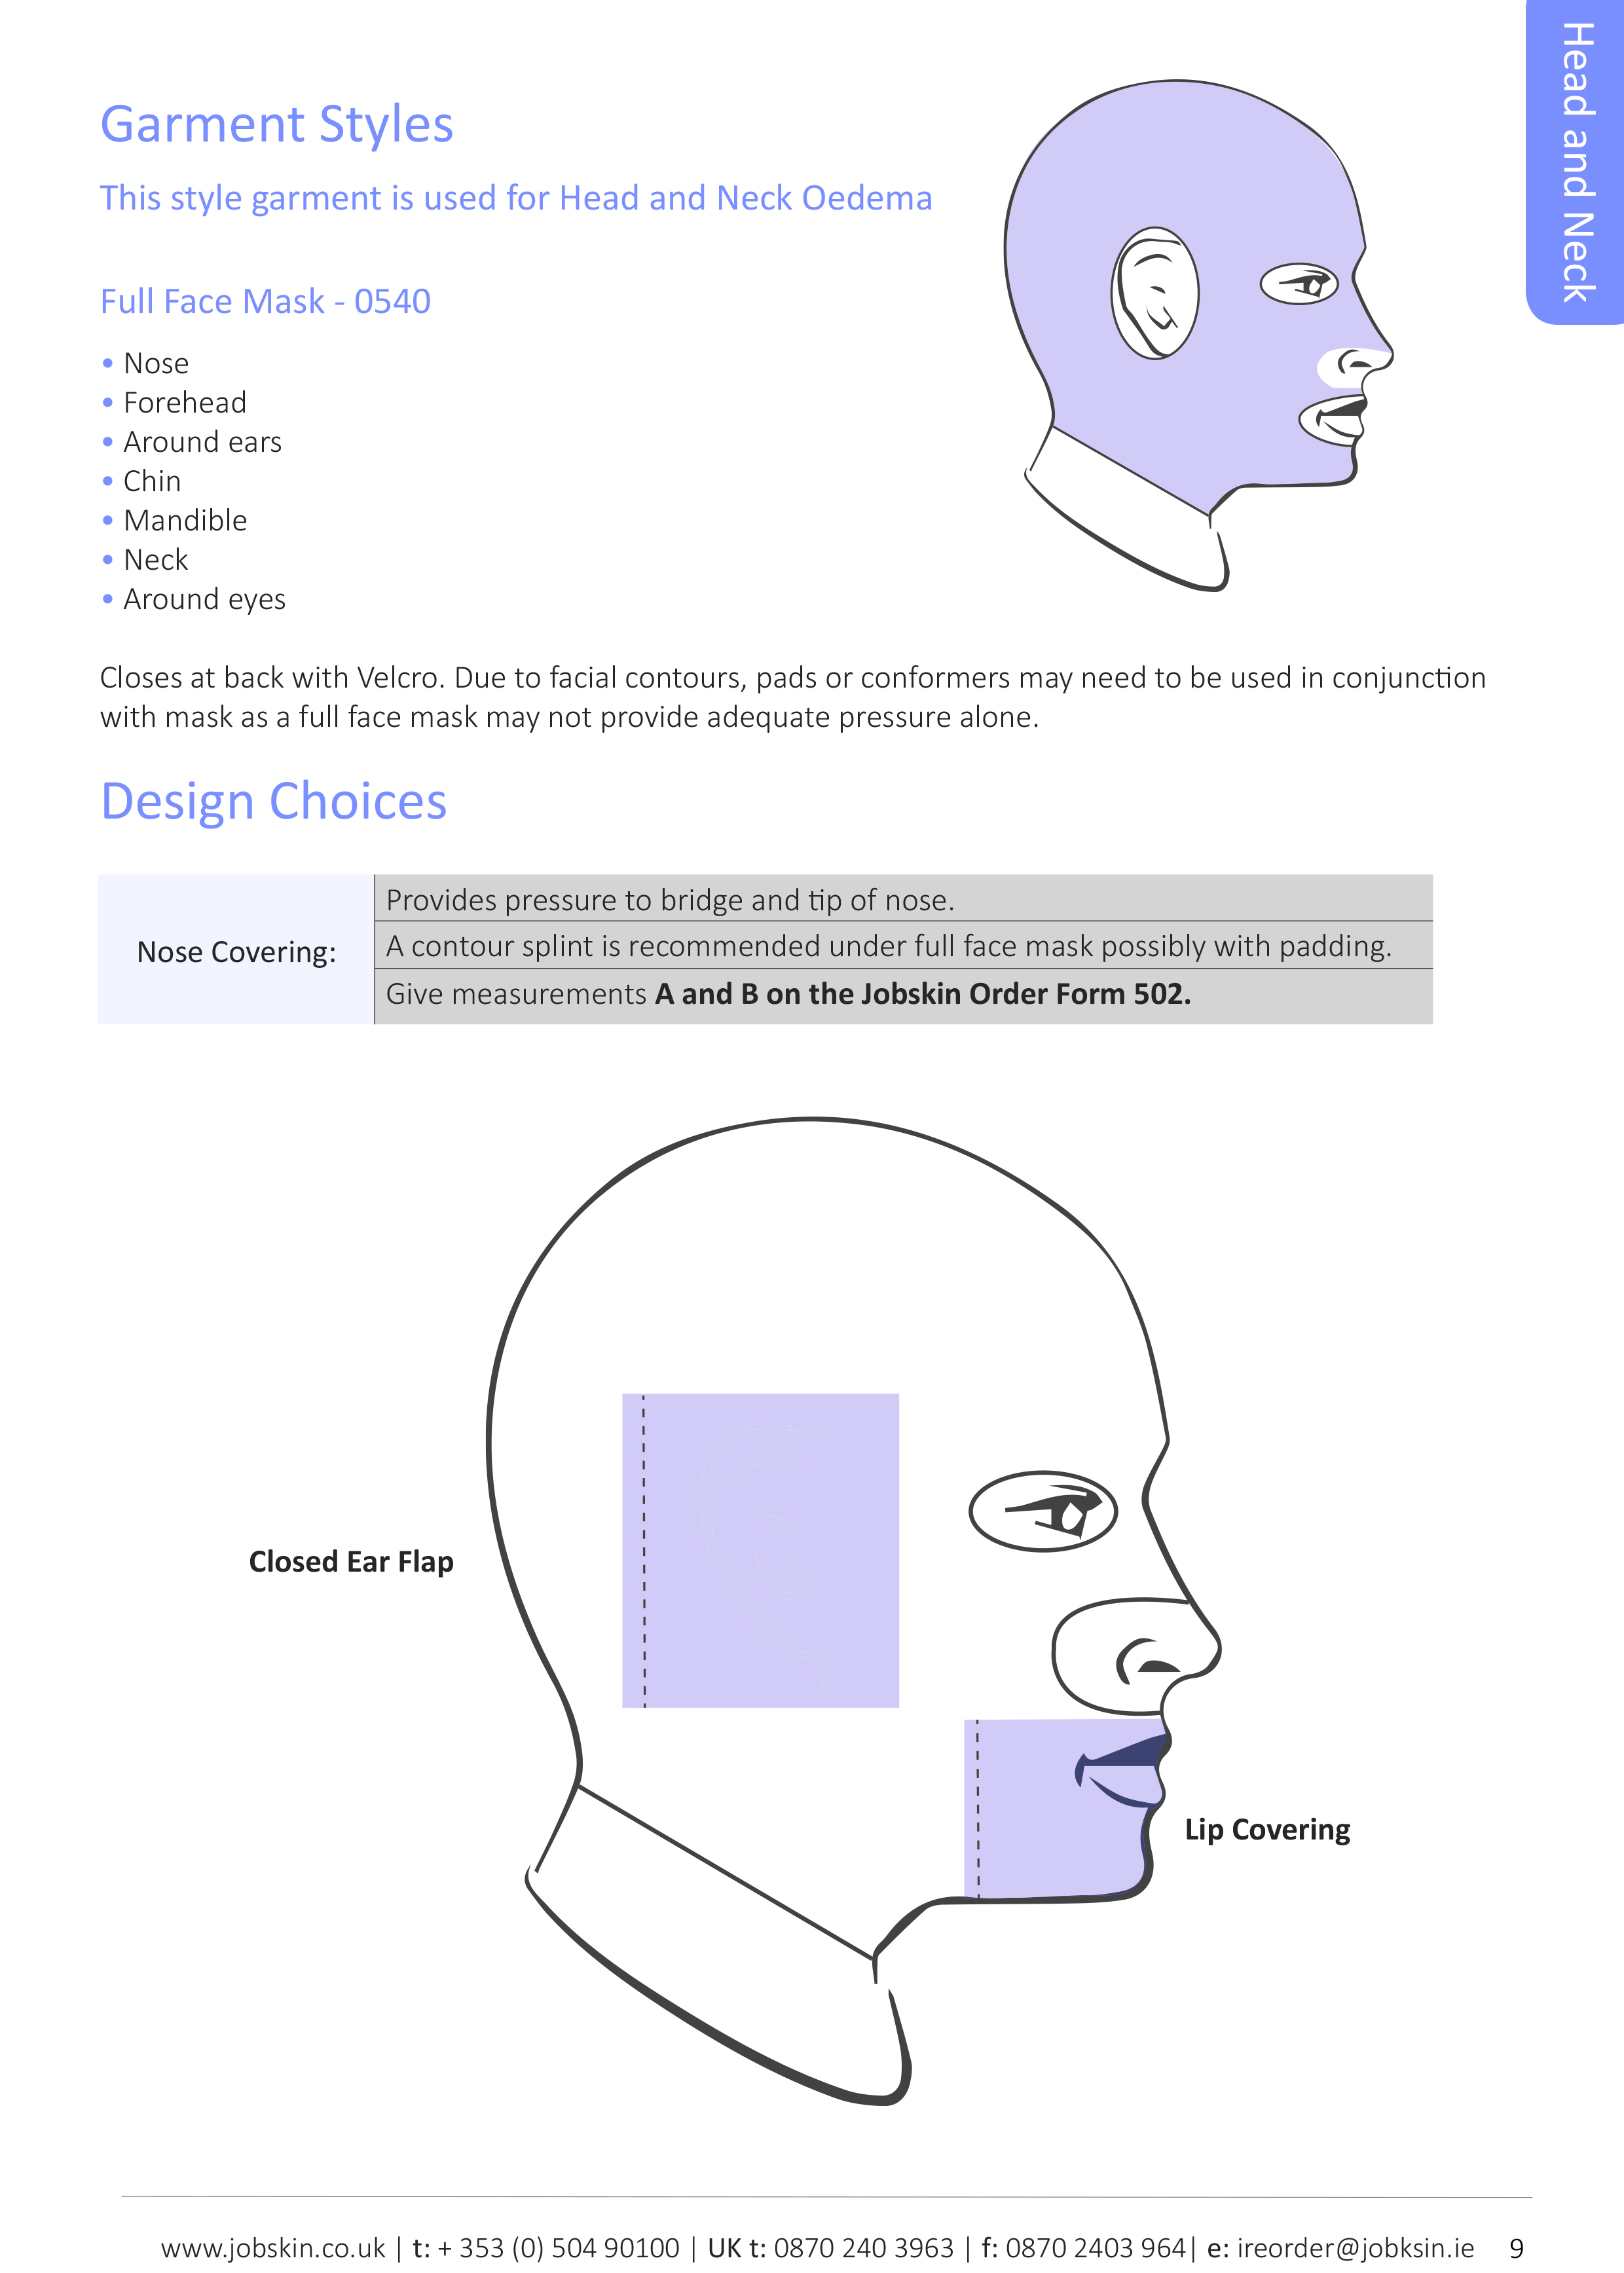 Head and neck design choices